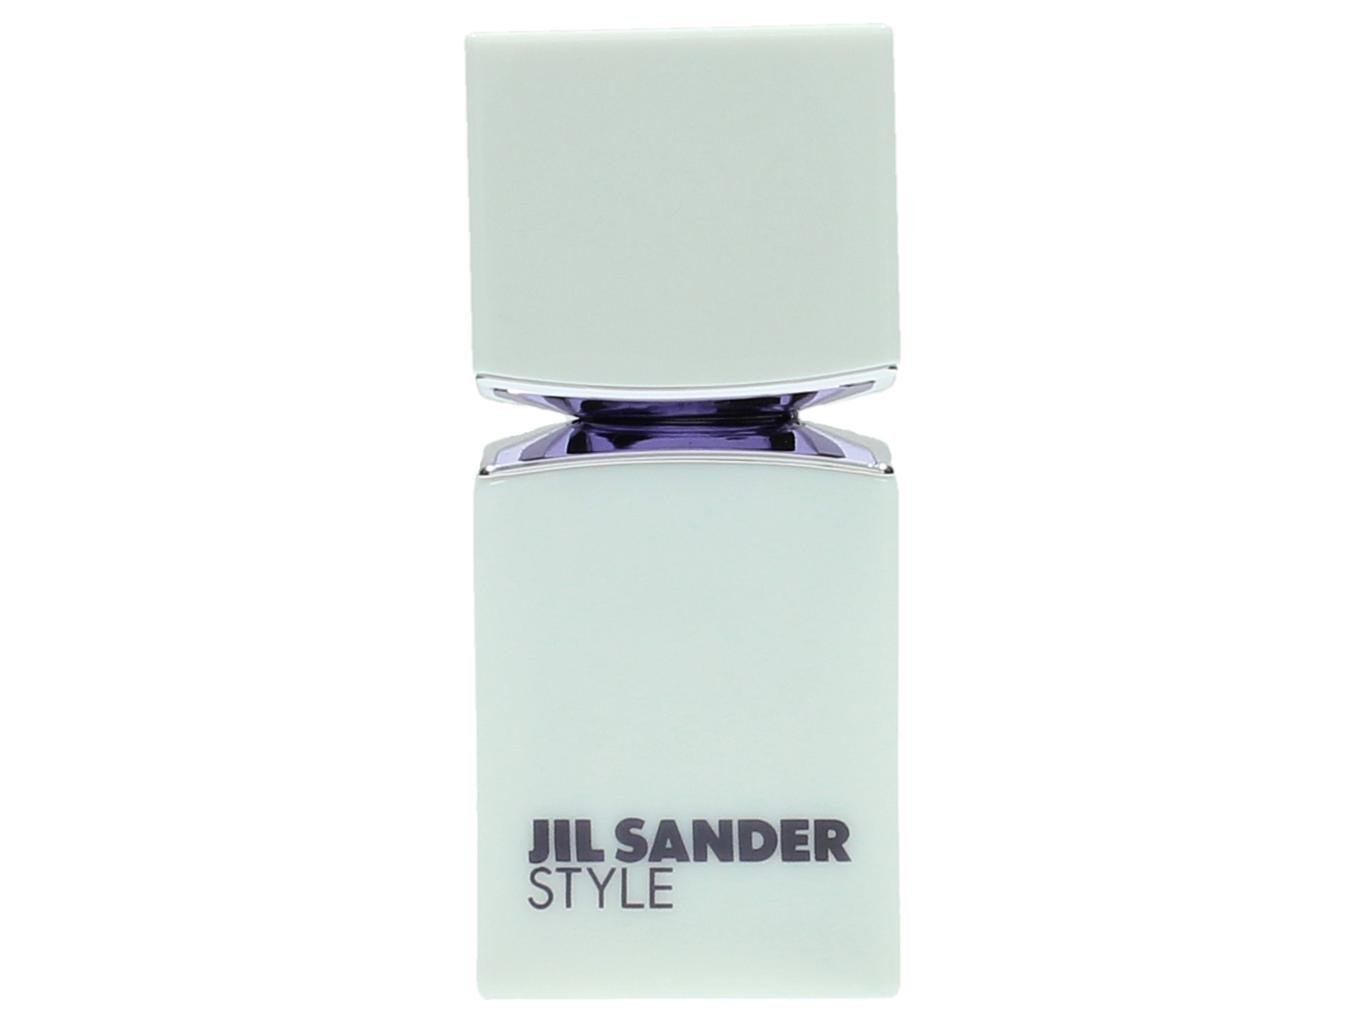 jil sander style femme woman eau de parfum vaporisateur. Black Bedroom Furniture Sets. Home Design Ideas